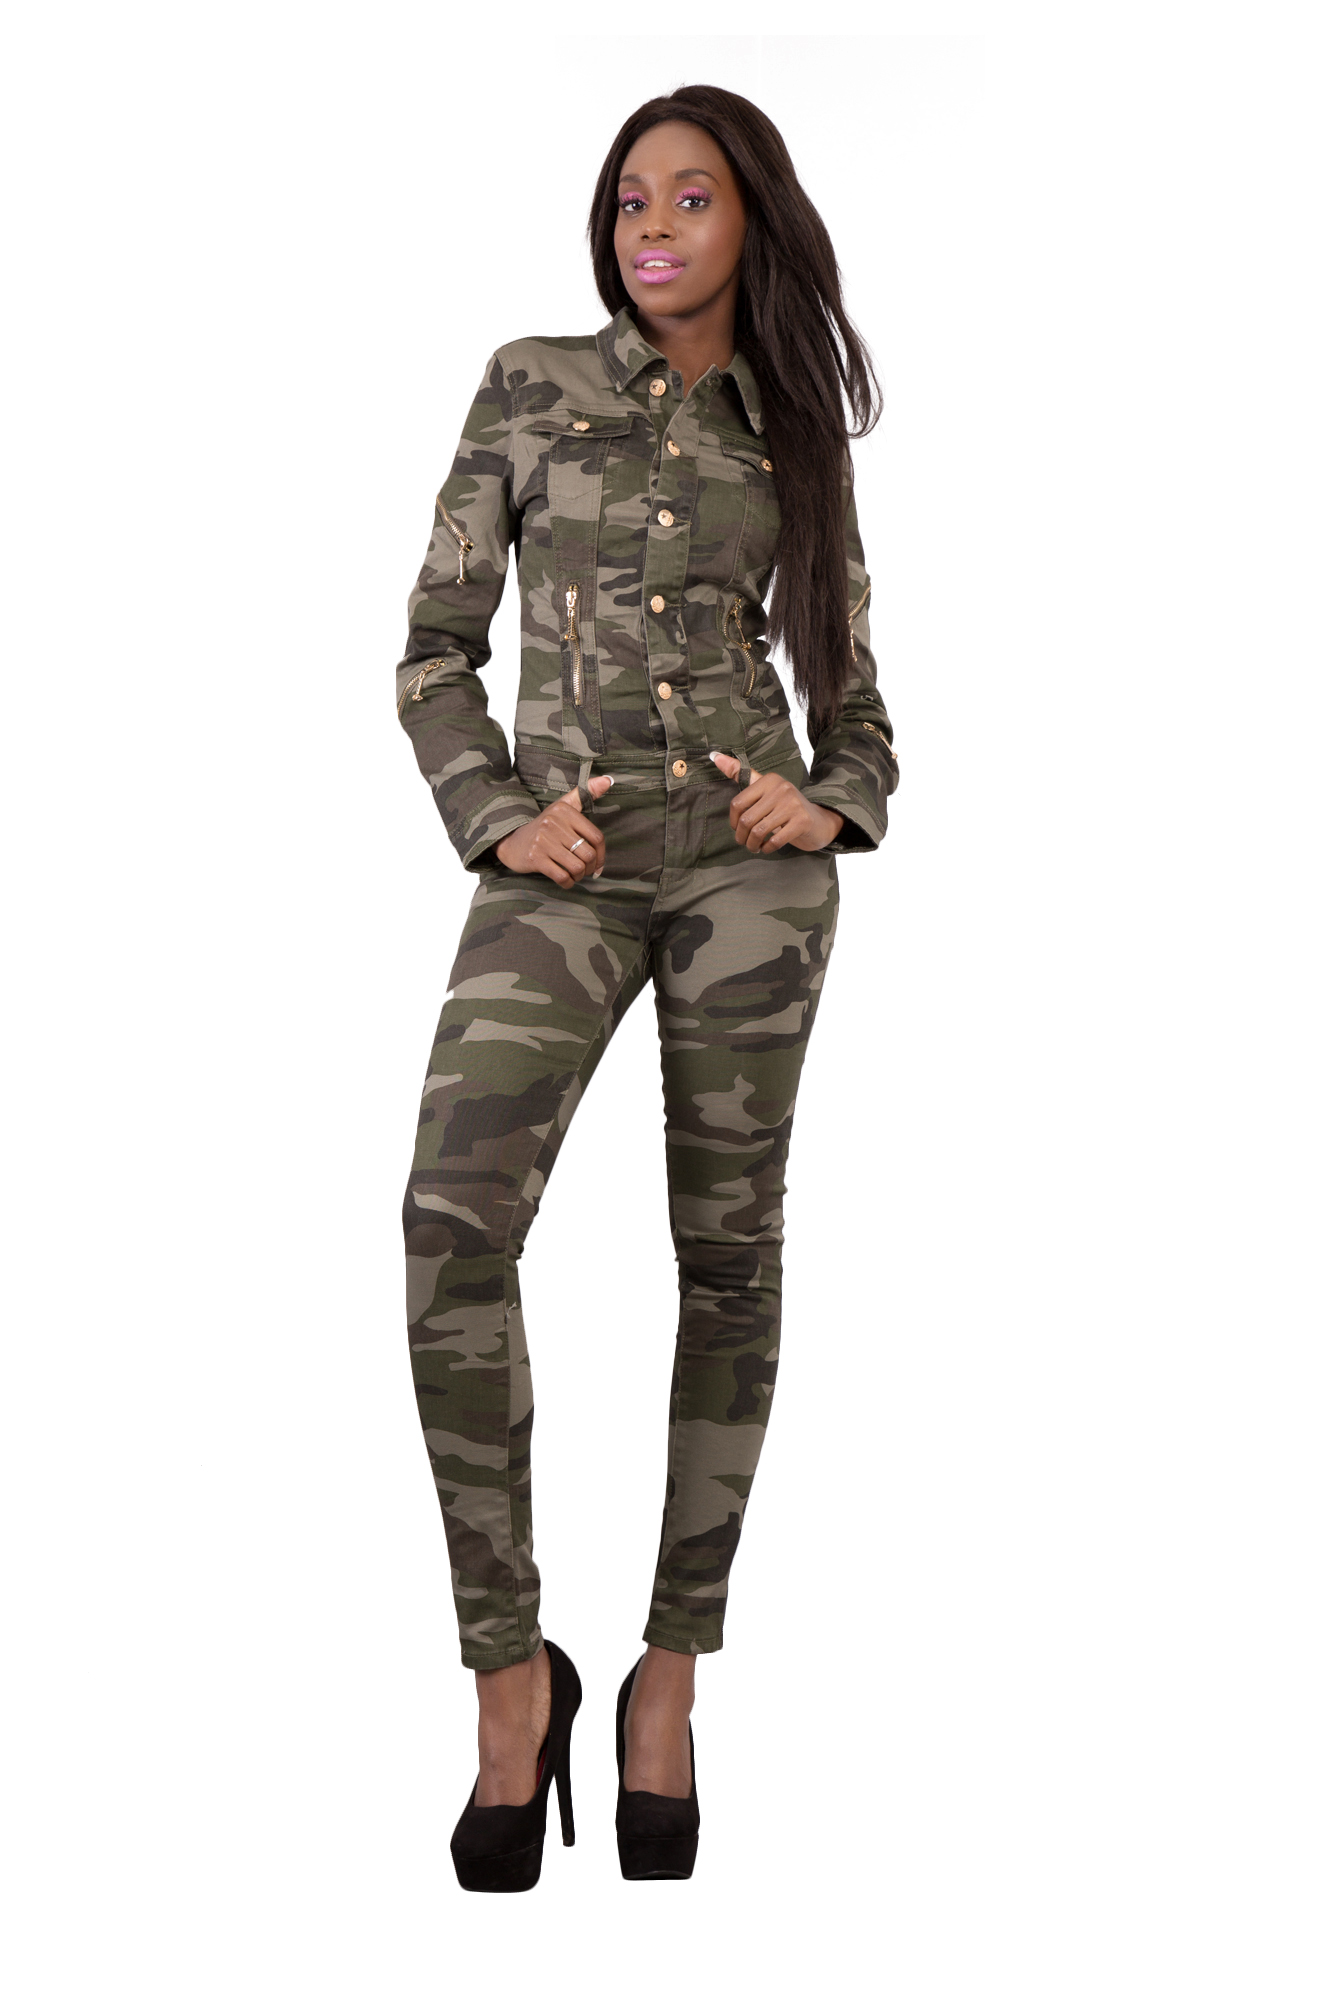 Sexy Women's Camouflage Jeans Jumpsuit Ripped Skinny Legs ...